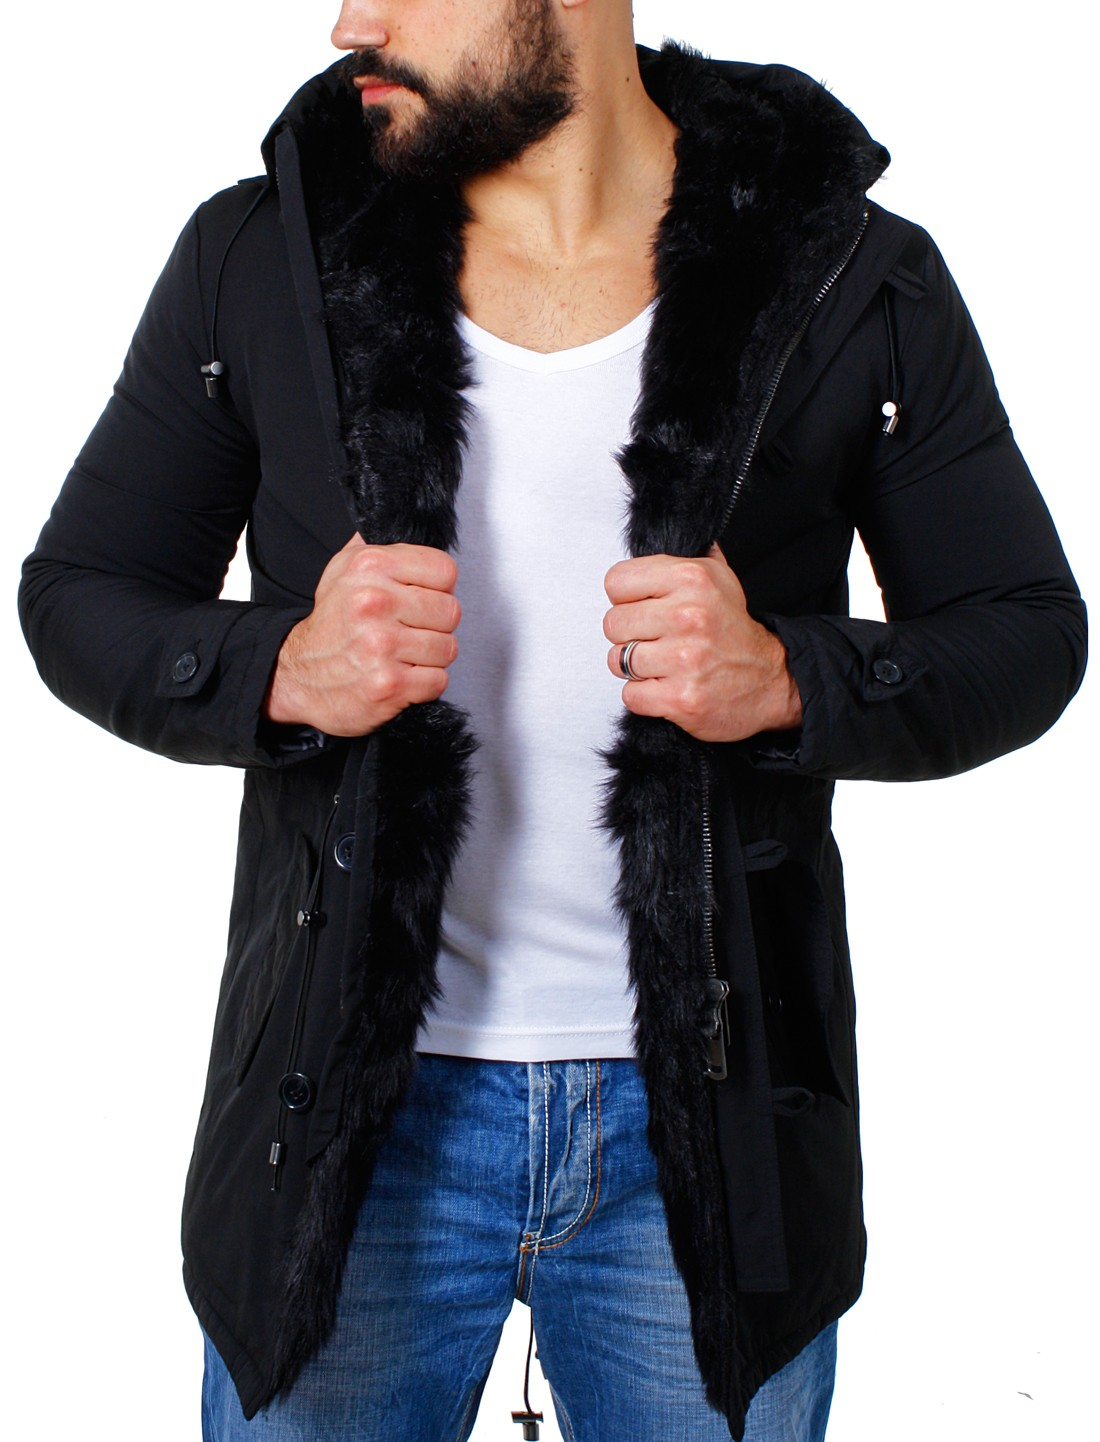 redbridge herren kurzmantel parka jacke mit kunstinnenfell winterjacke warm gef ttert m6032. Black Bedroom Furniture Sets. Home Design Ideas